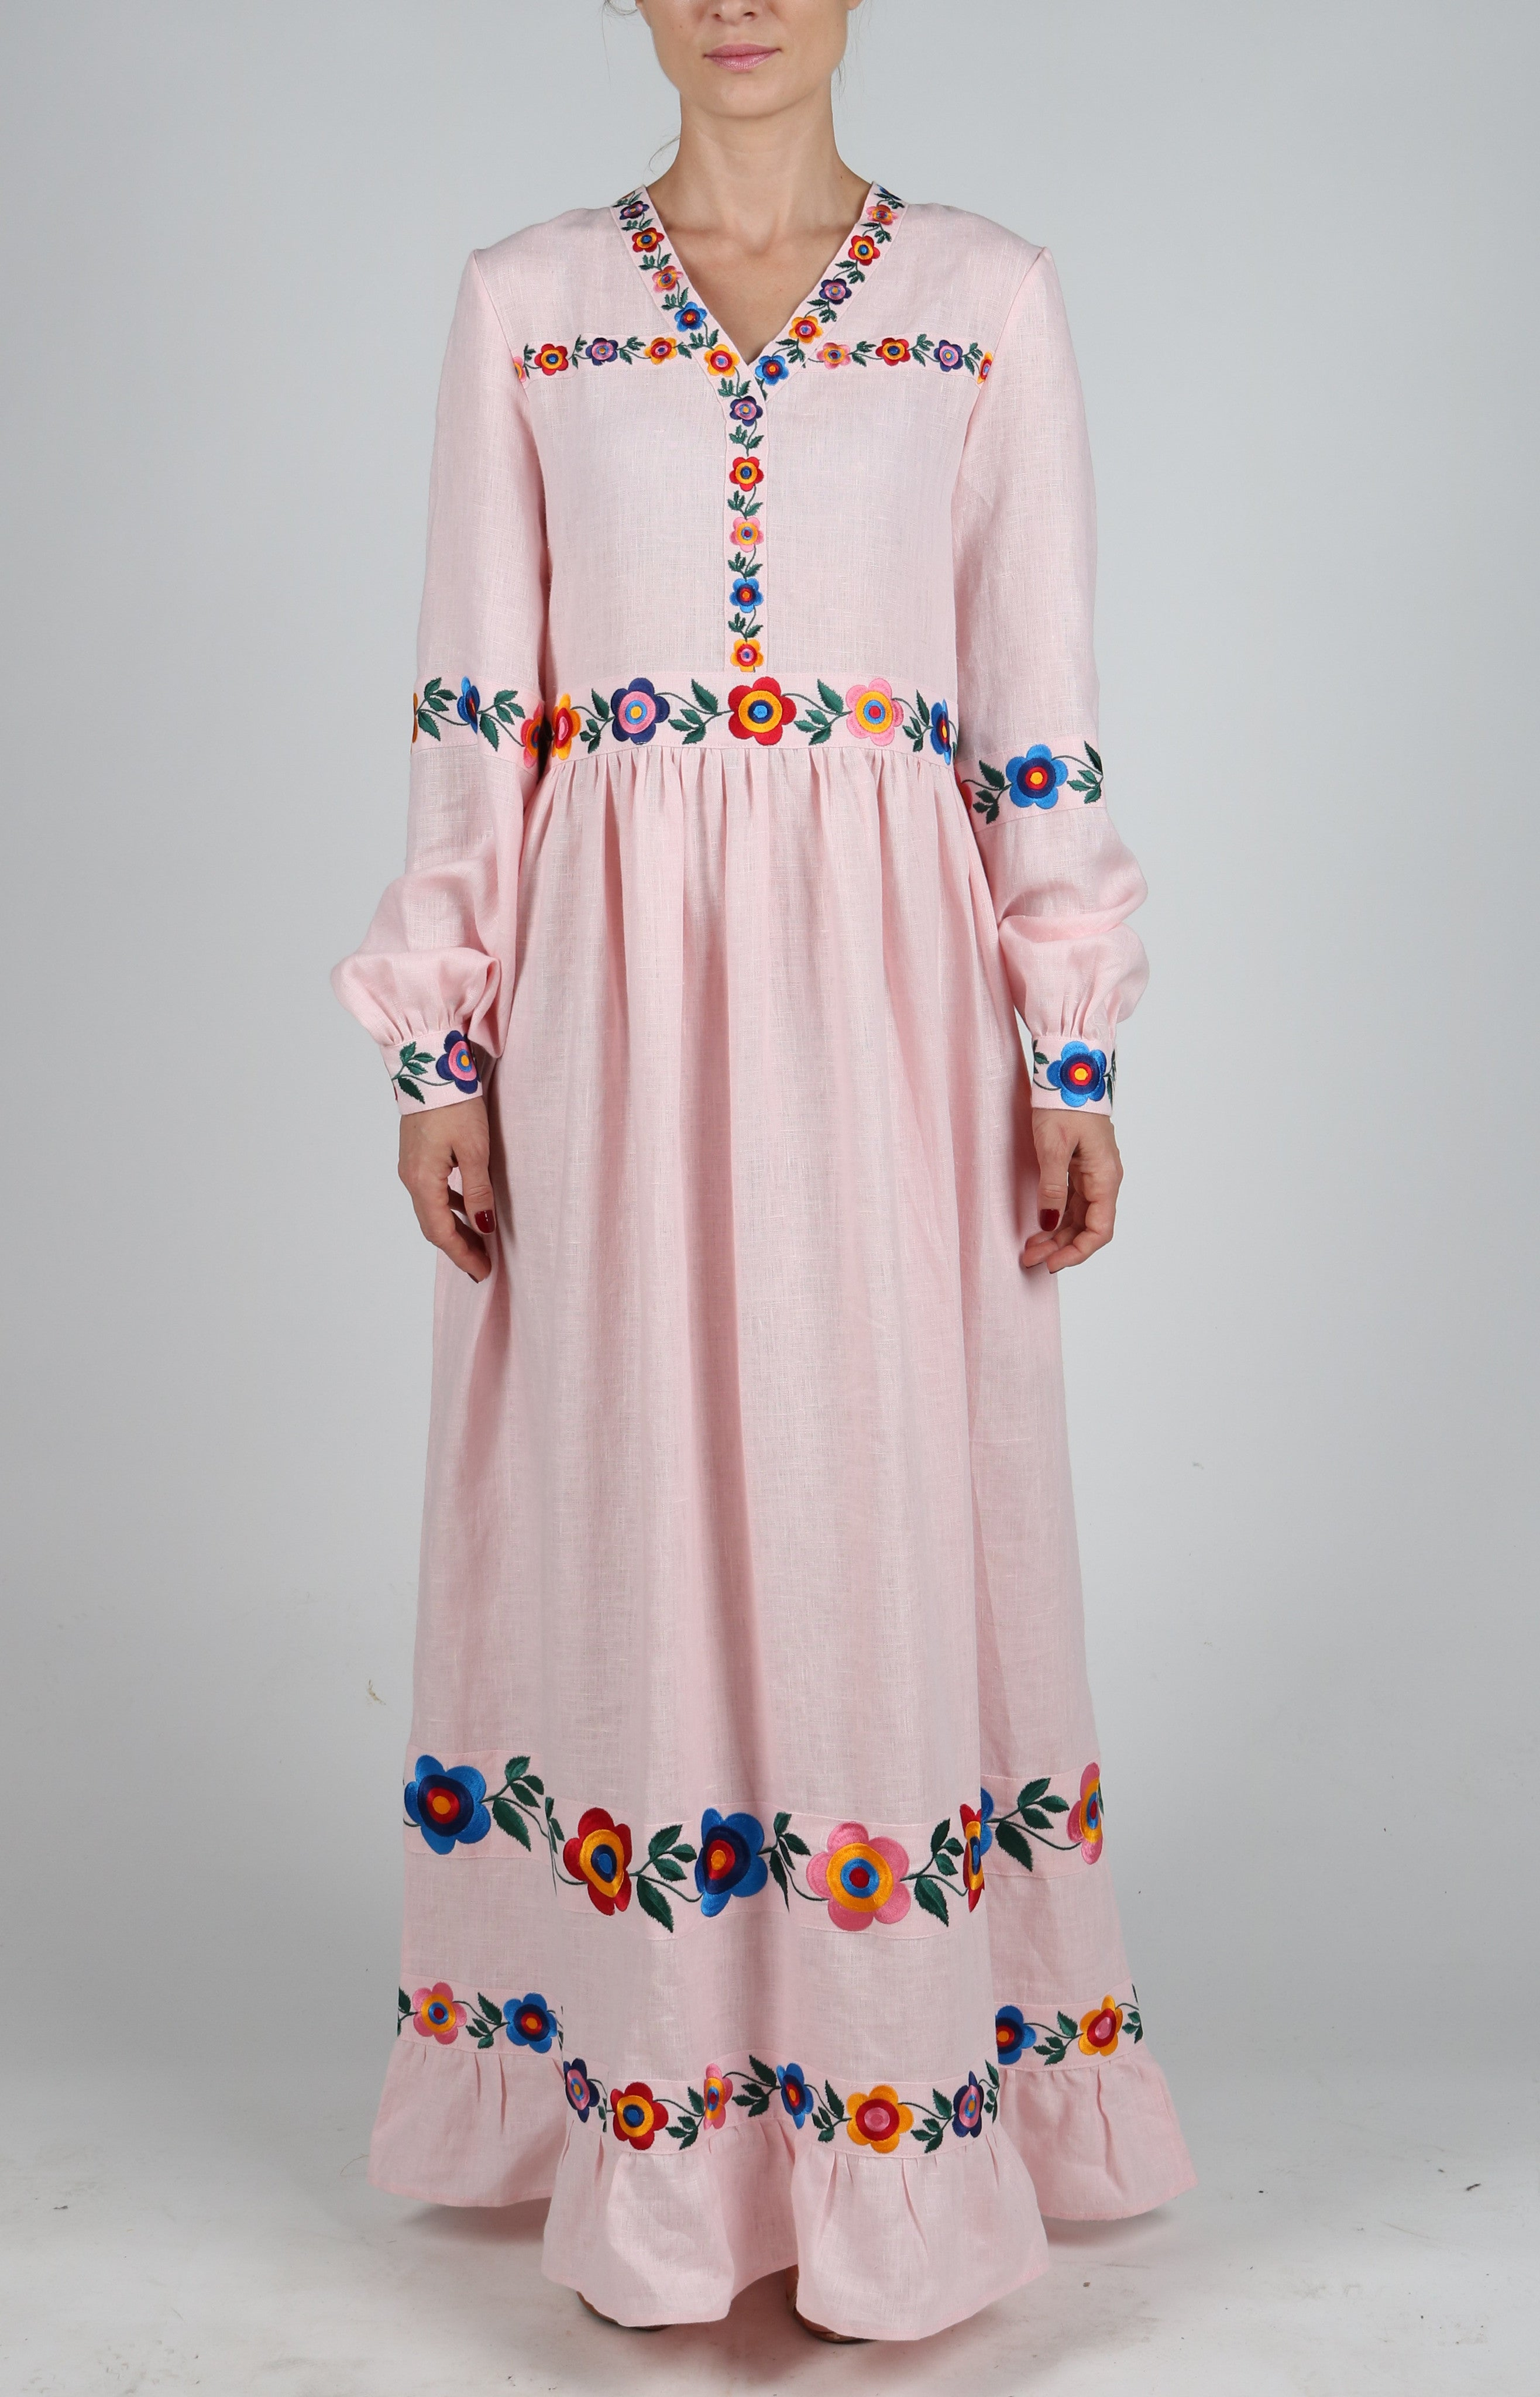 Fanm Mon BOHEME Vyshyvanka Maxi Dress Embroidered Pink Linen Multi Color Floral Embroidered Dress